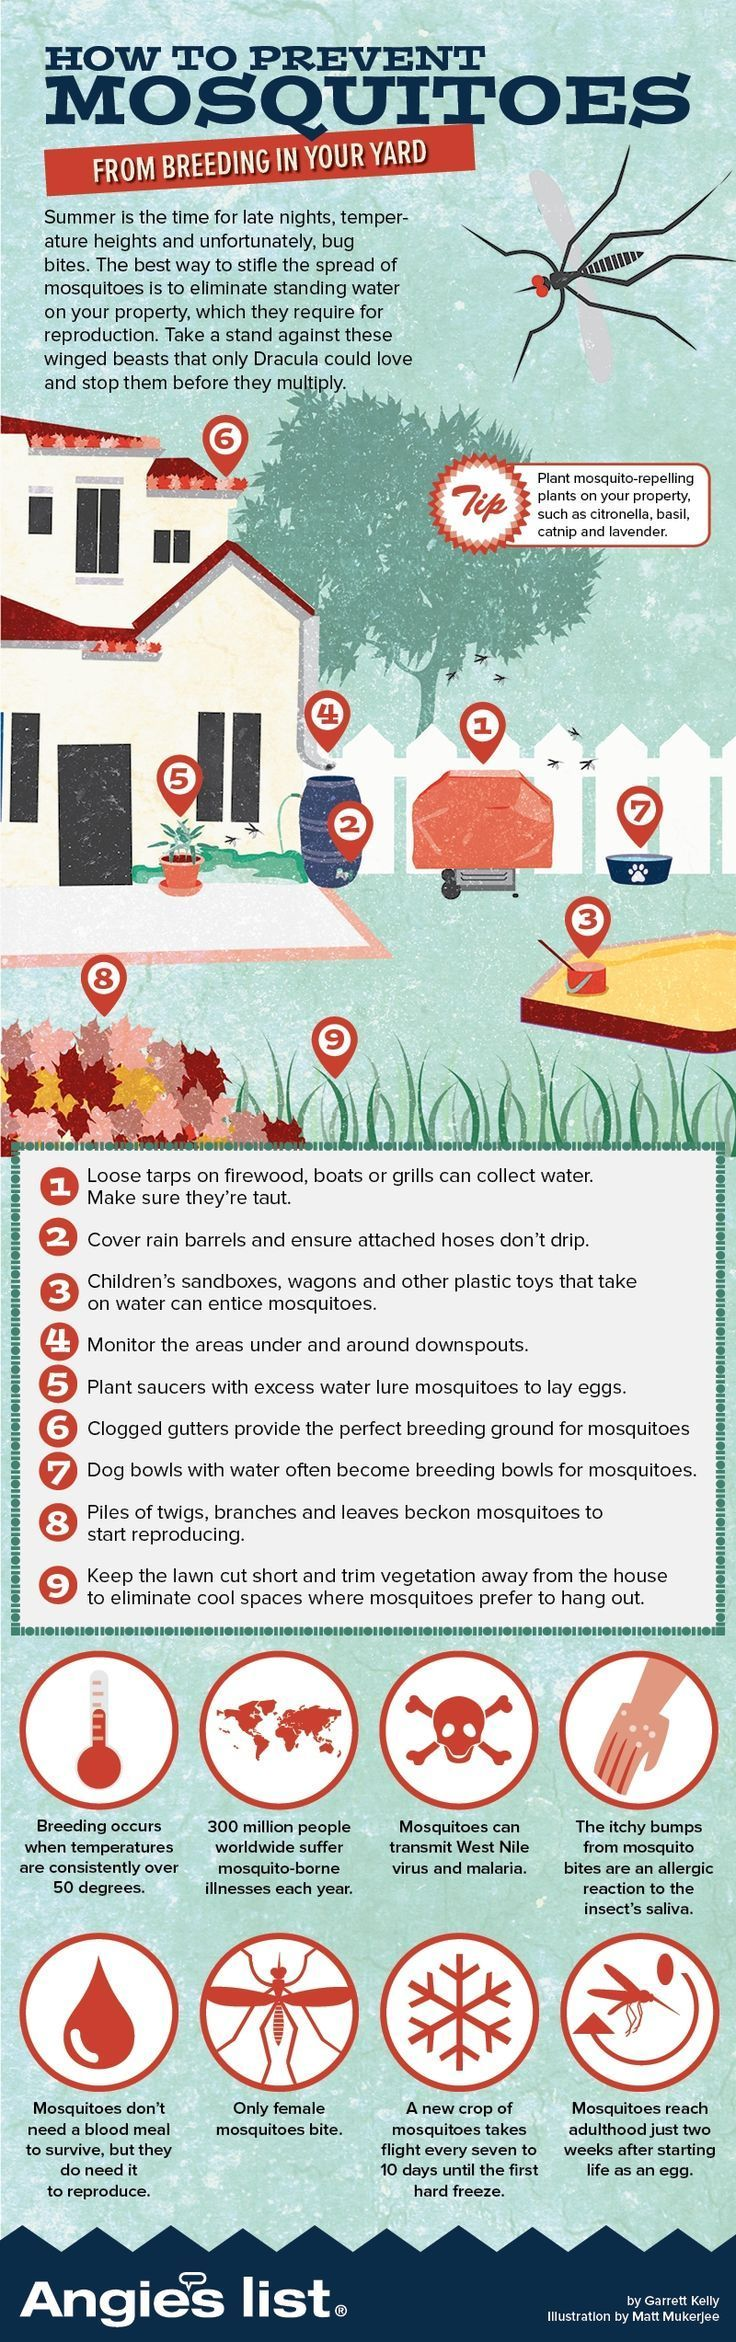 Prevent those itchy mosquito bites with these useful tips!